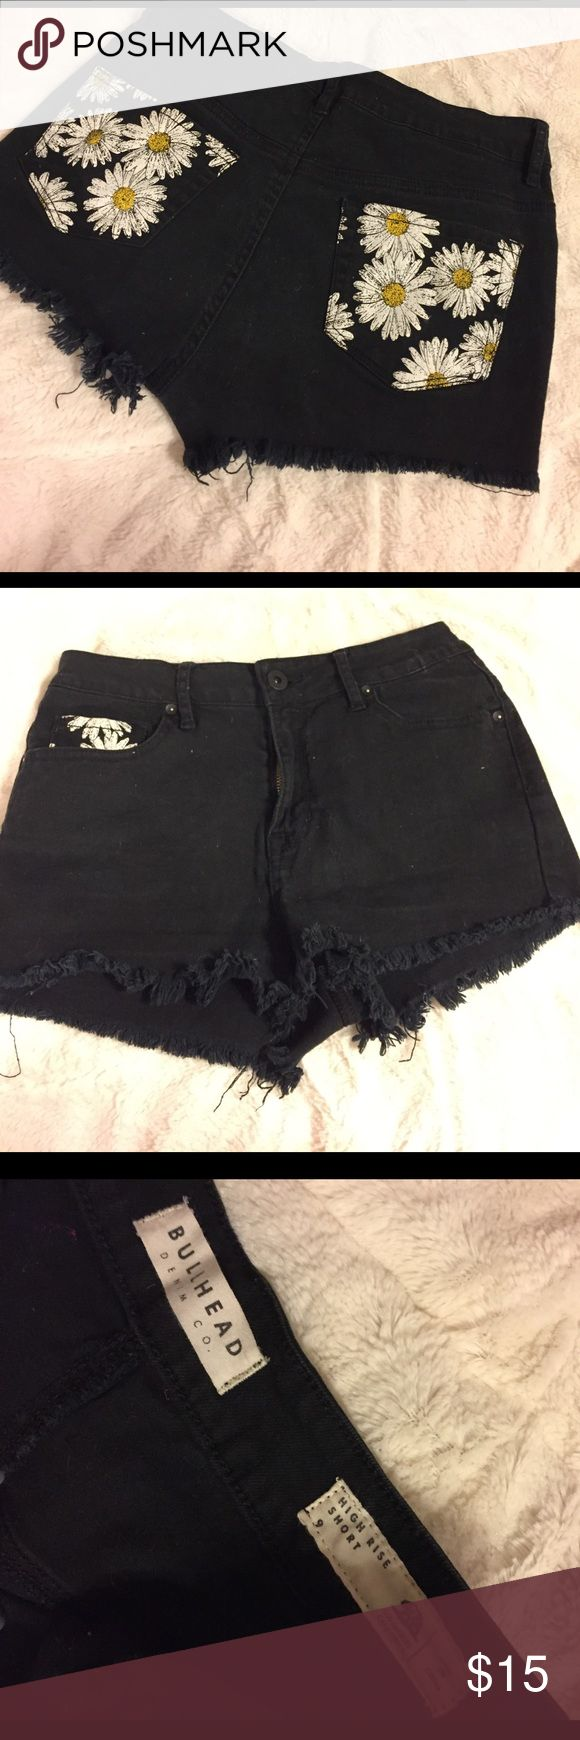 PACSun high rise black  shorts! Size 9. Bullhead brand, size 9. Black denim with frayed edges. High rise, barely worn, great condition!  PacSun Shorts Jean Shorts